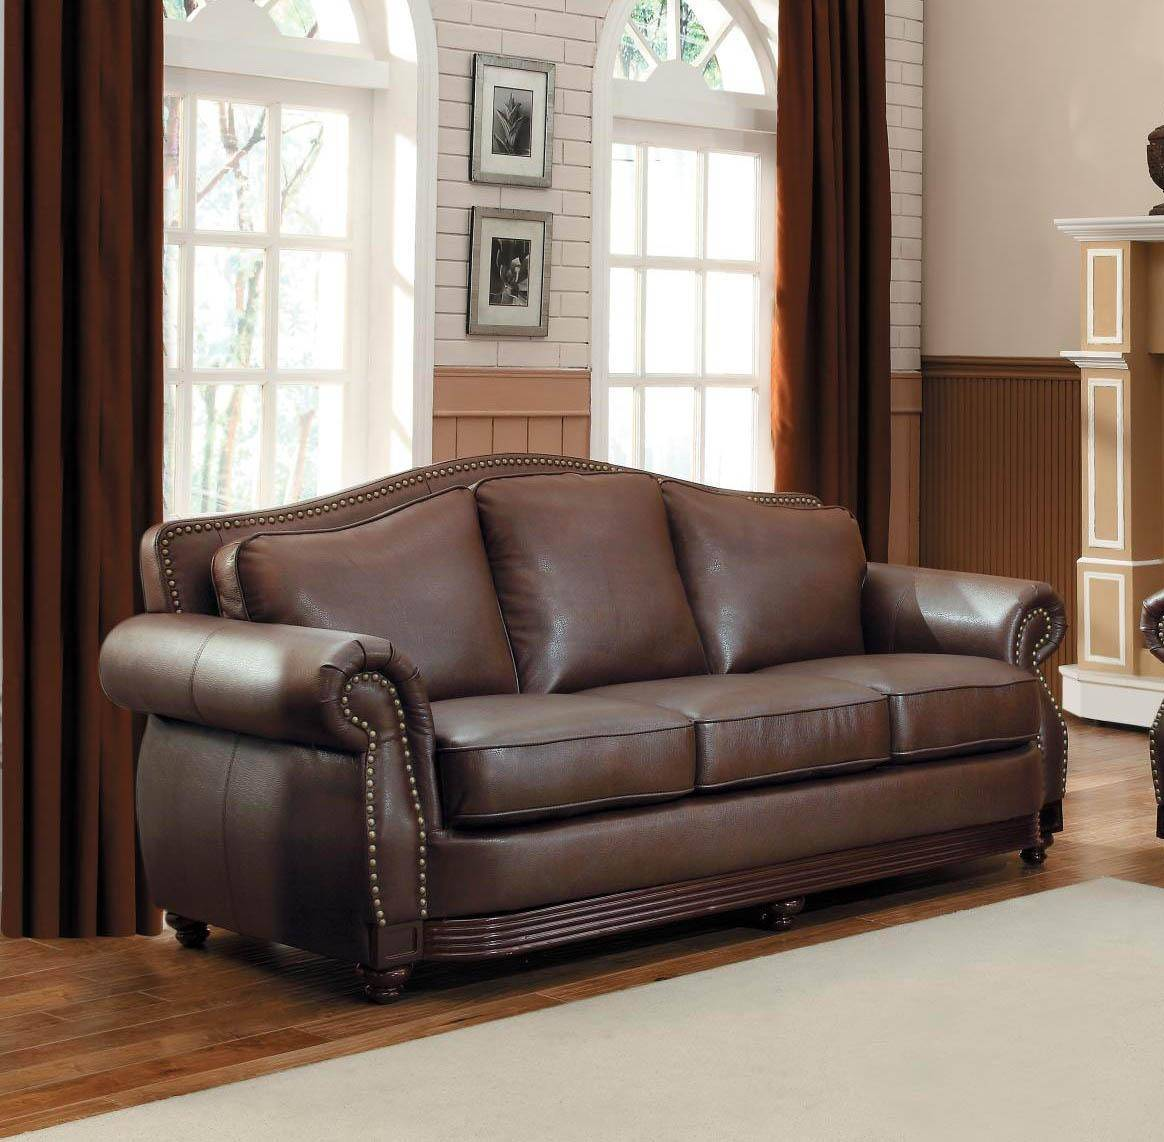 Homelegance 9616BRW-3 Midwood Brown Bonded Leather Sofa Set 2Pcs ...